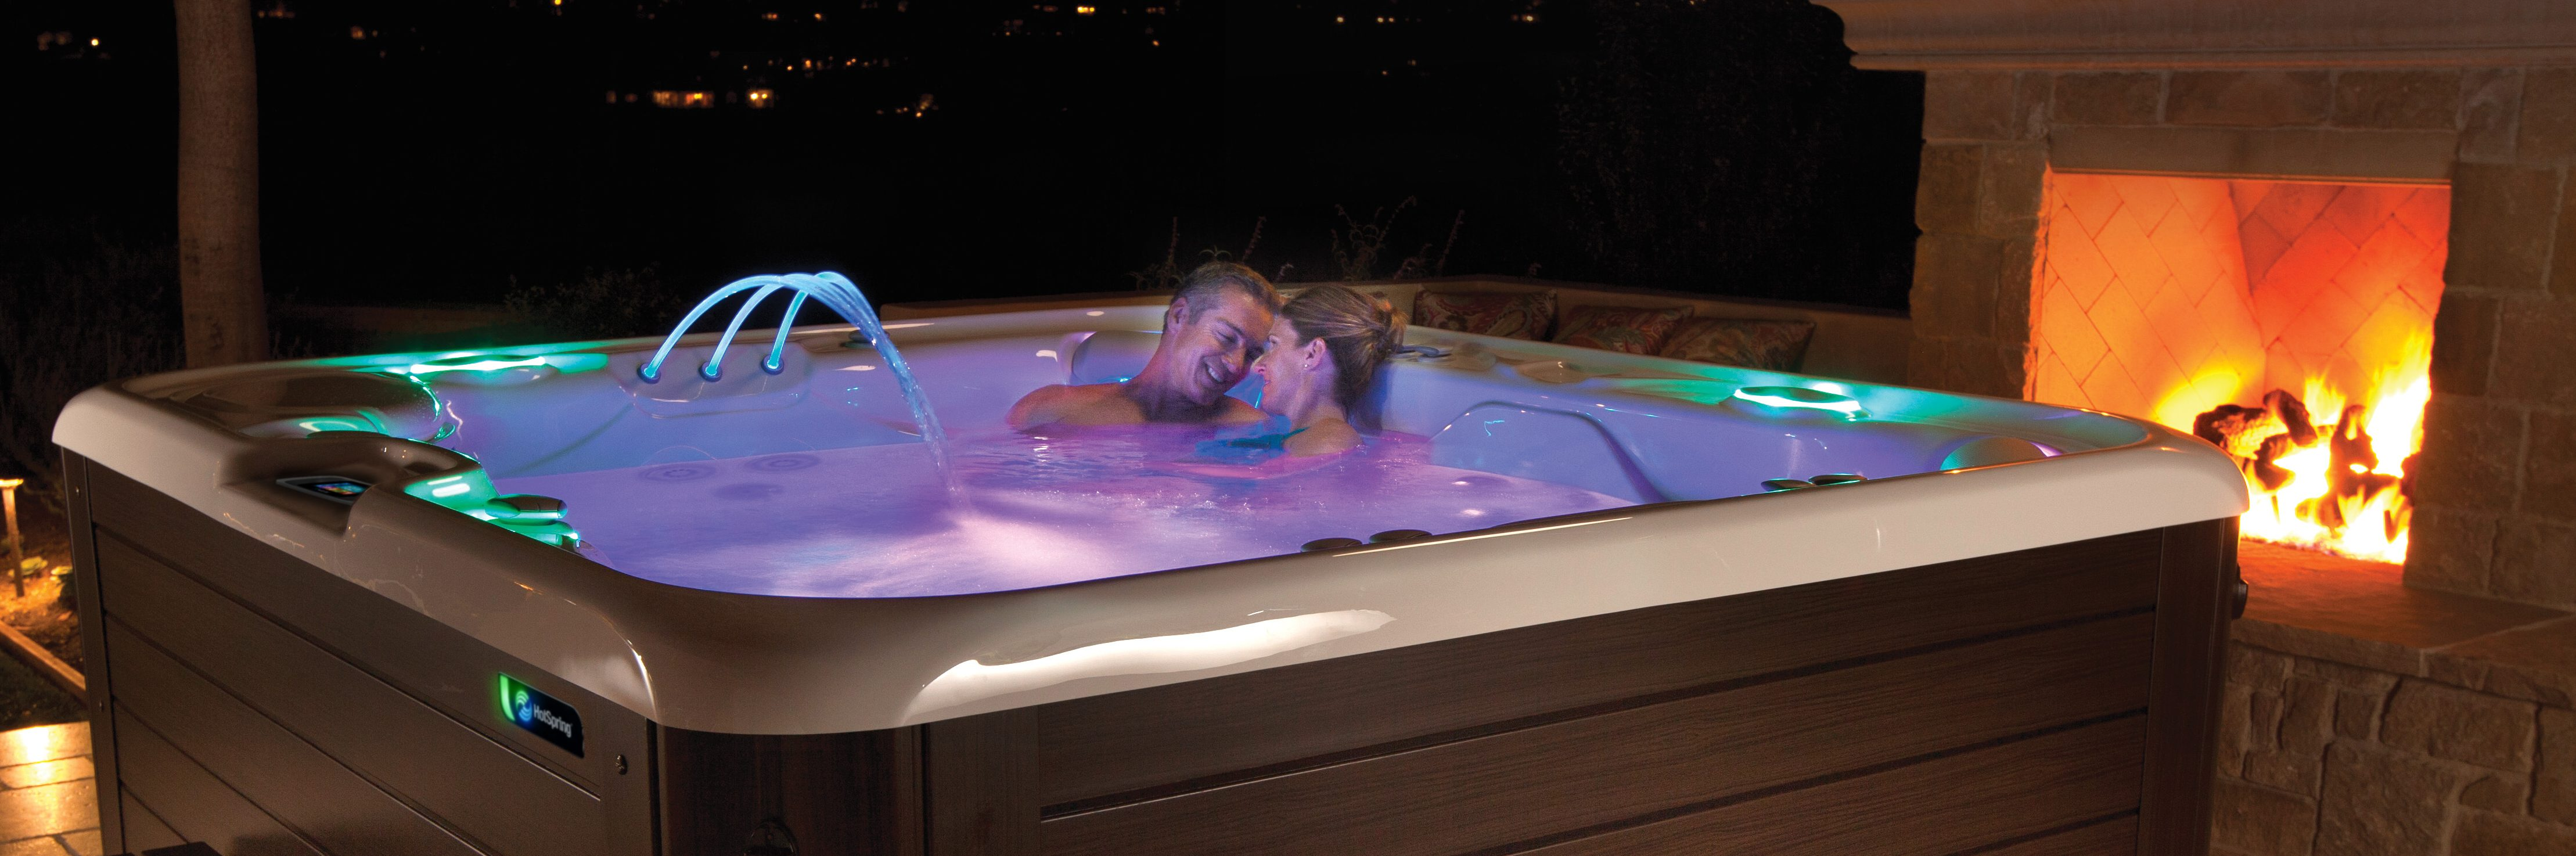 3 Essential Date Night Secrets for the Hot Tub